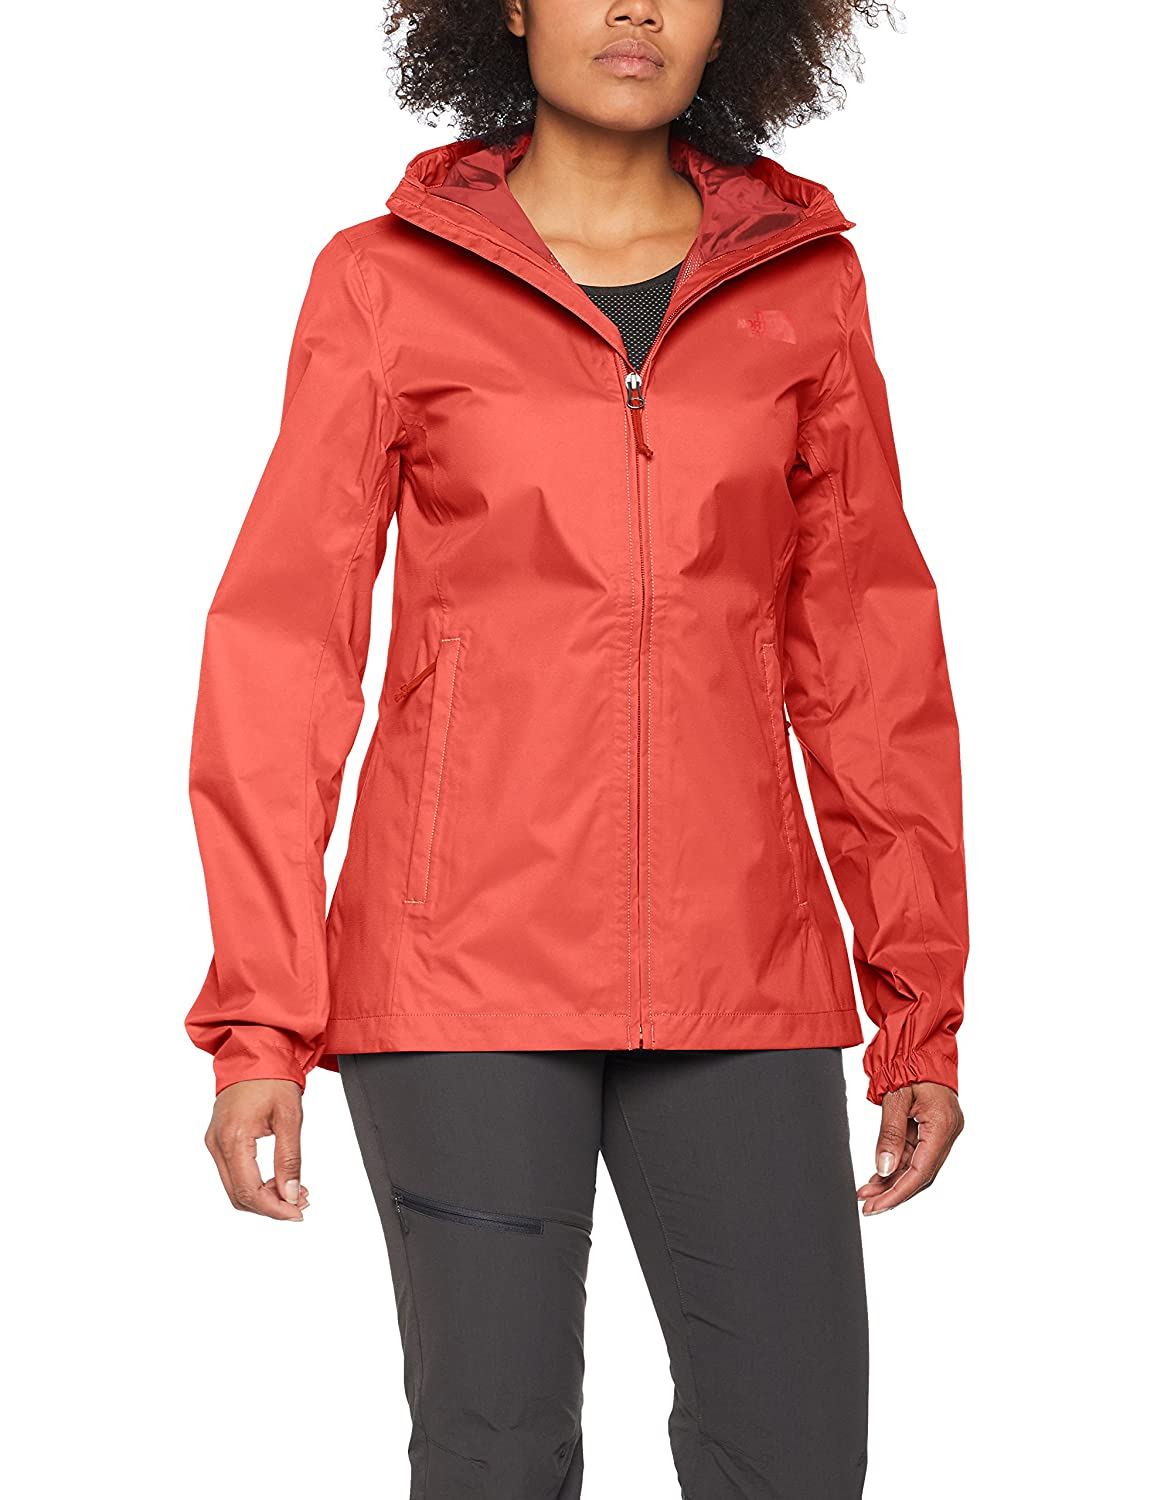 Cayenne Red M The North Face Tanken Women's Outdoor Jacket